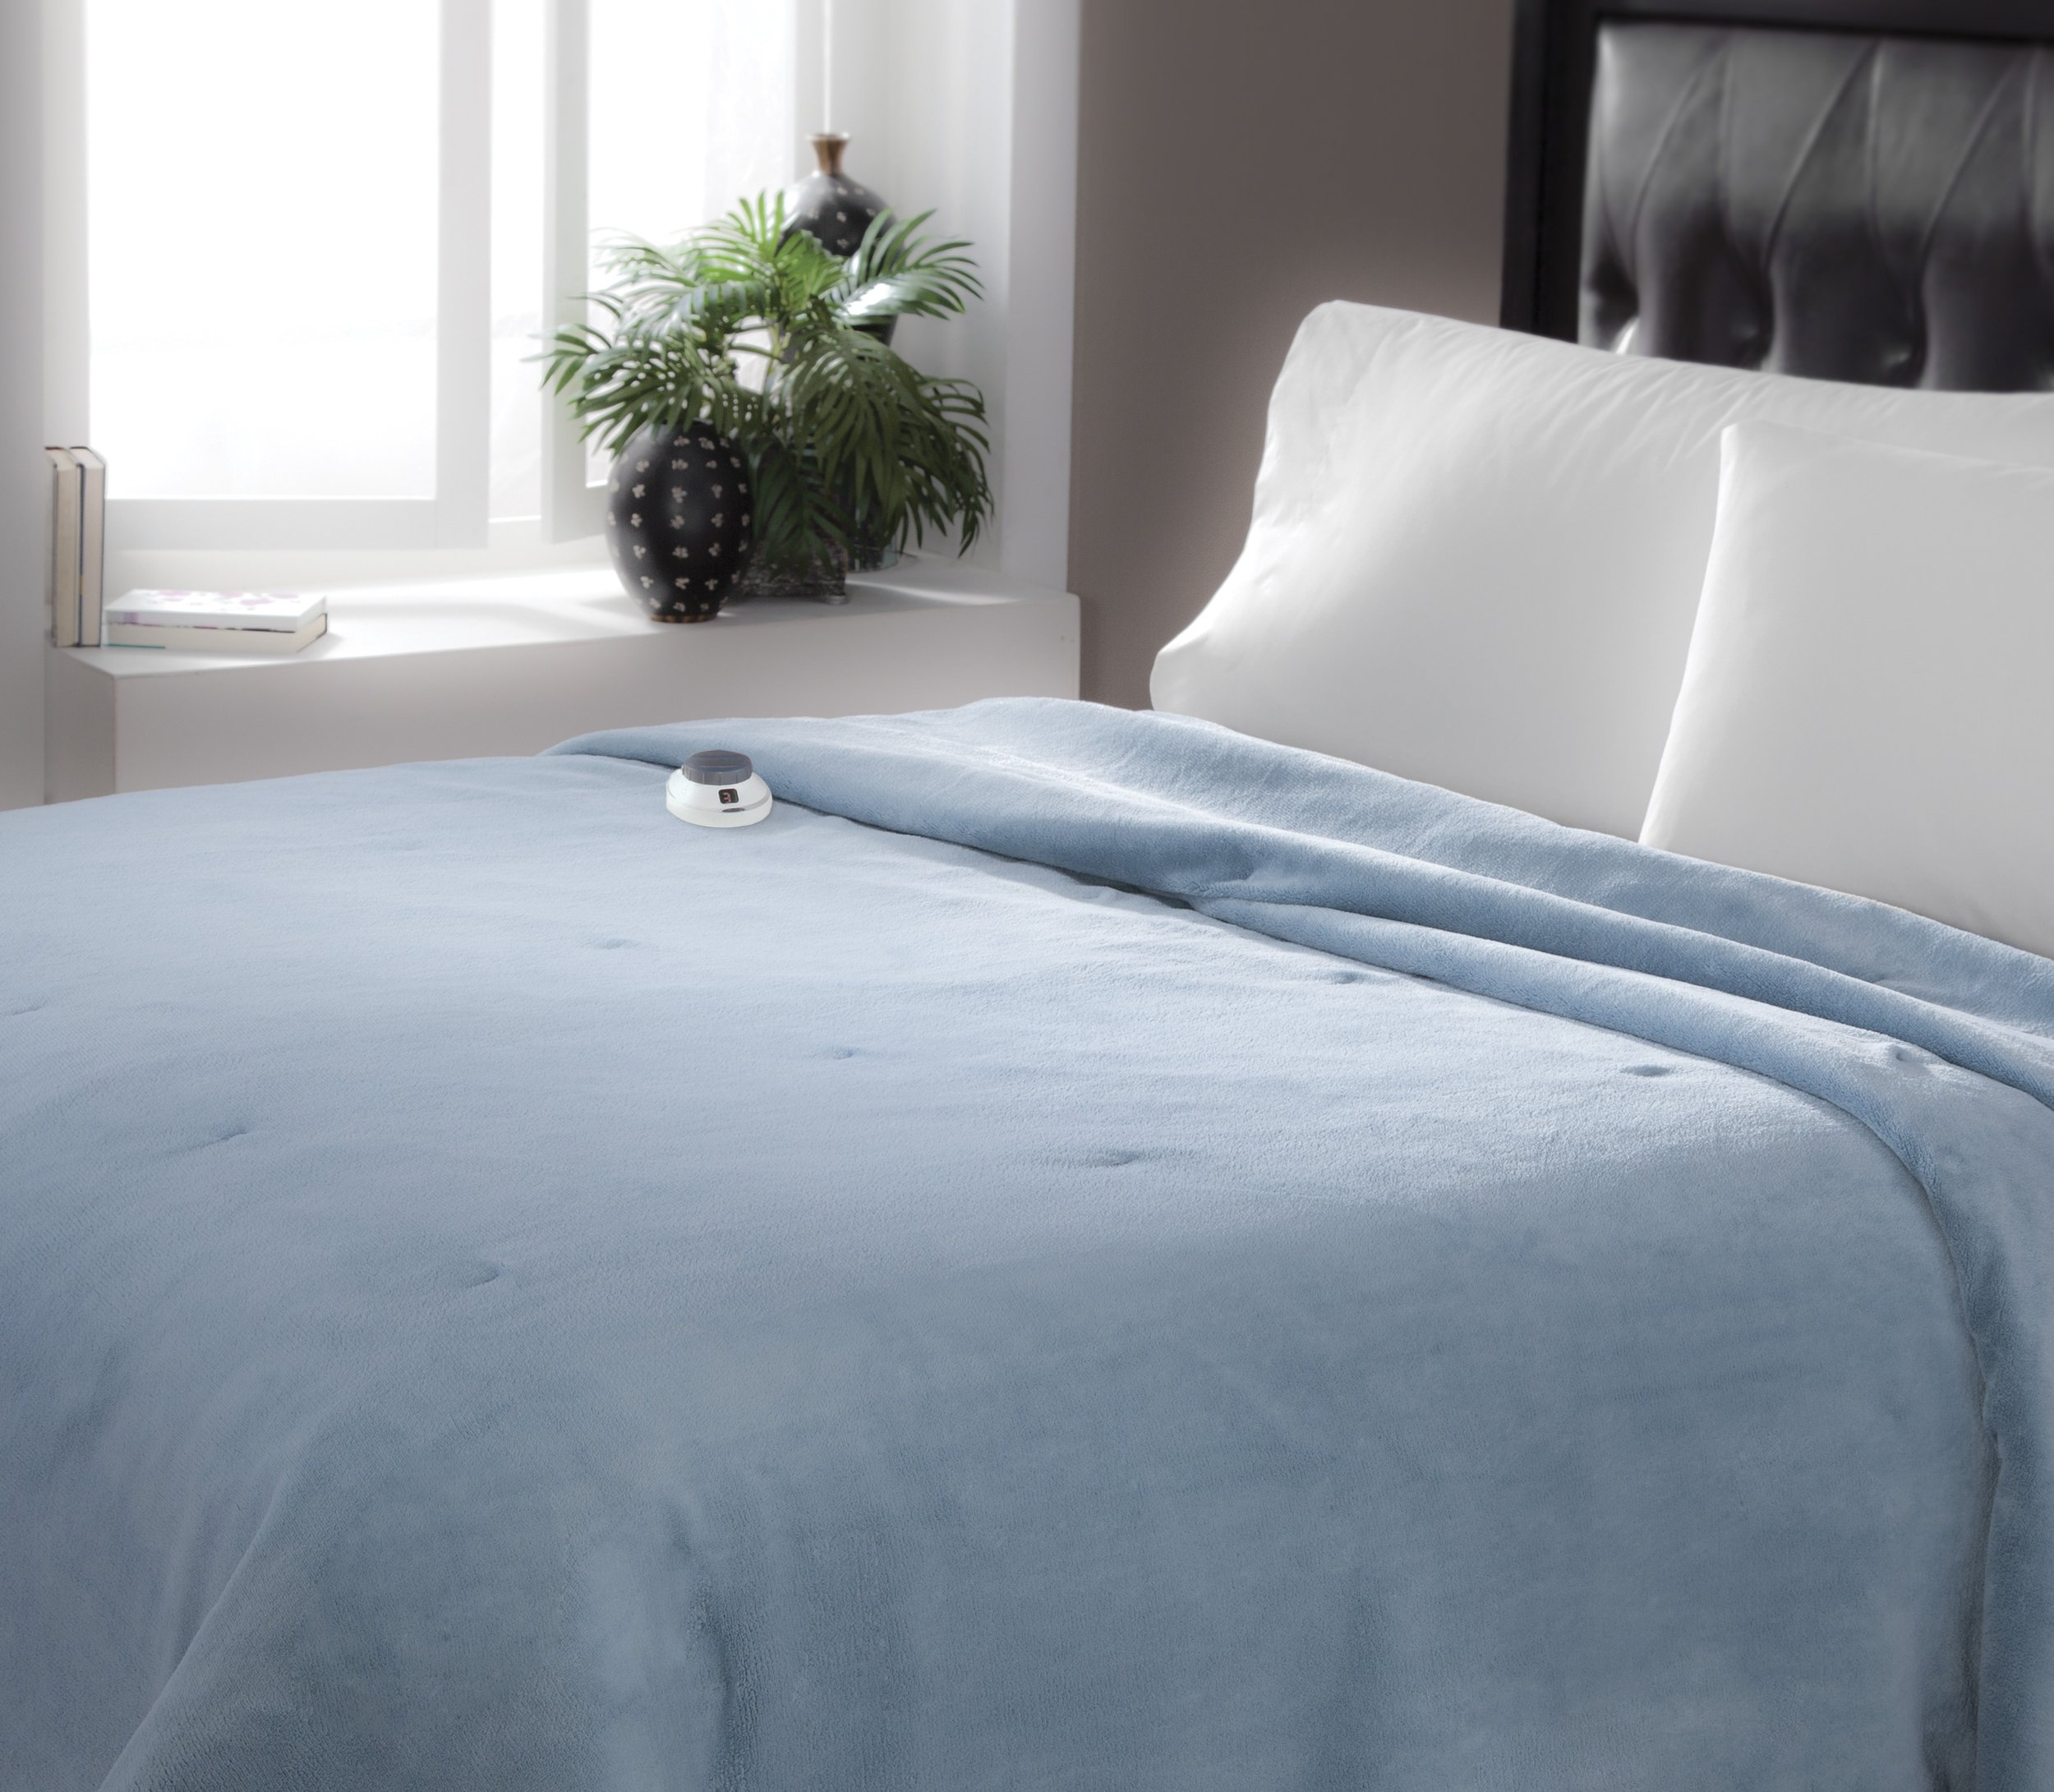 Serta Luxe Plush Low-Voltage Electric Heated Micro-Fleece Blanket, Queen, Sapphire by Serta (Image #2)